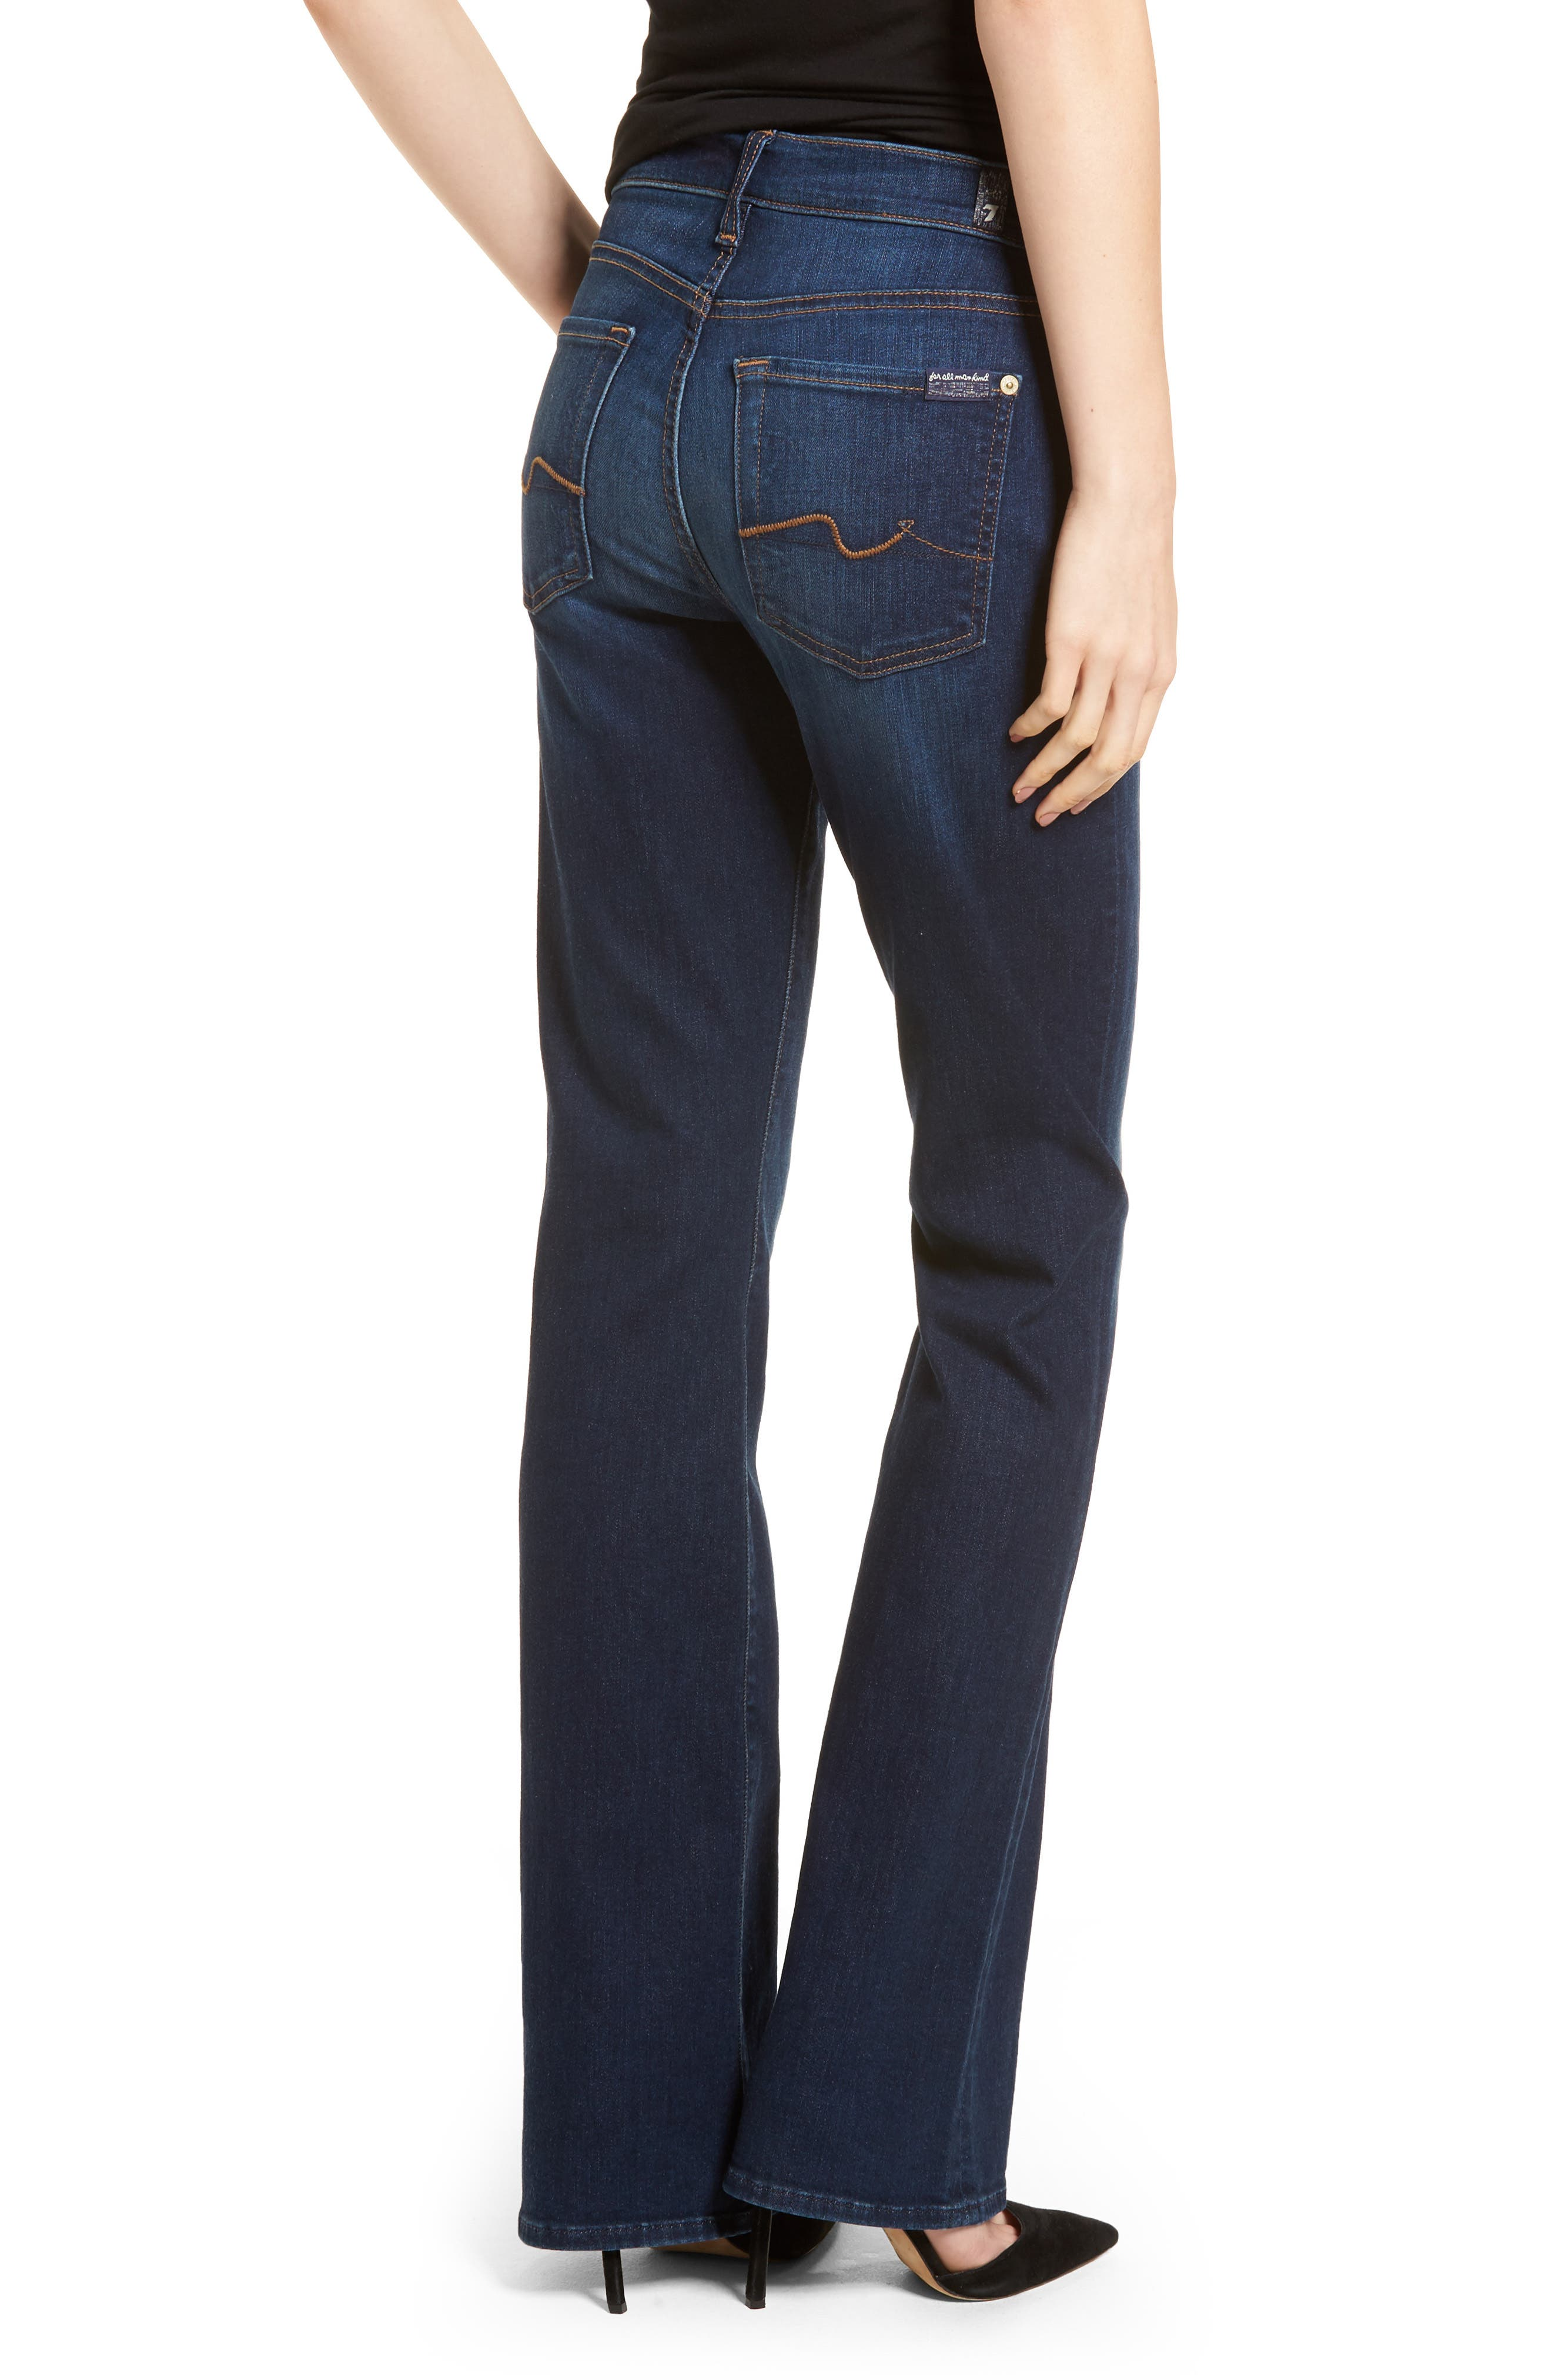 b(air) Tailorless Iconic Bootcut Jeans,                             Alternate thumbnail 2, color,                             MORENO